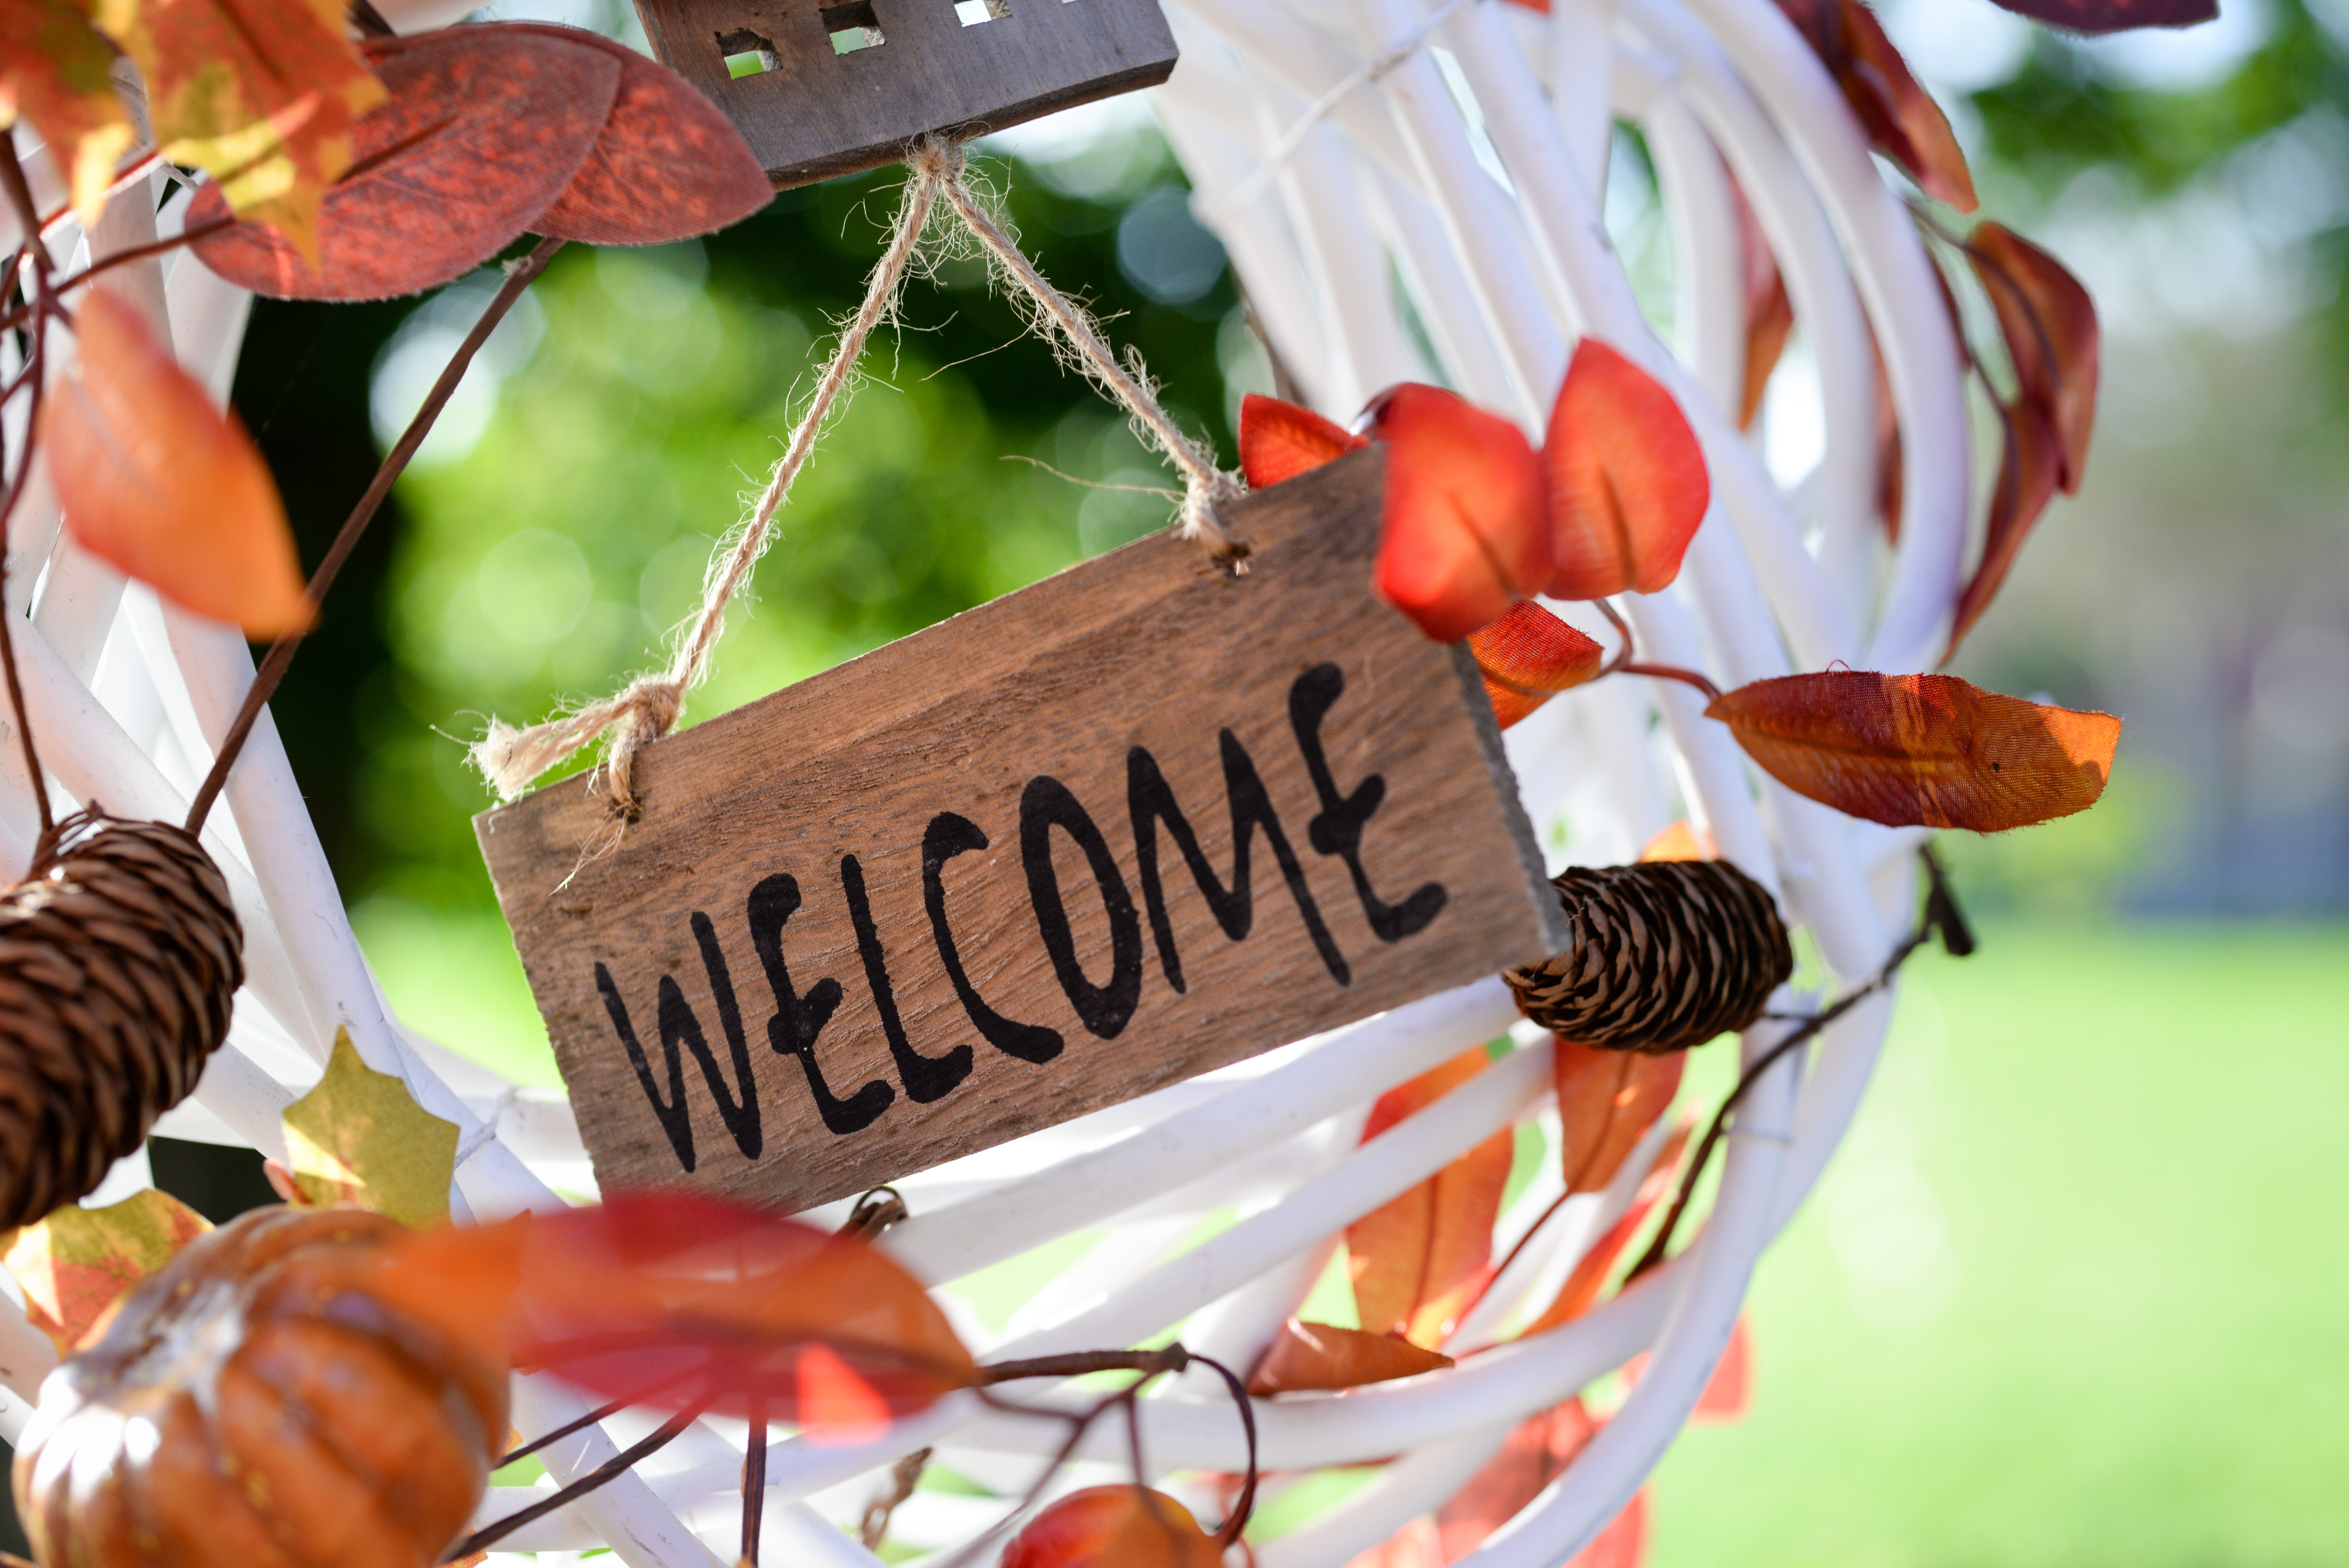 September welcomed fall weather and new Indiana Grown members